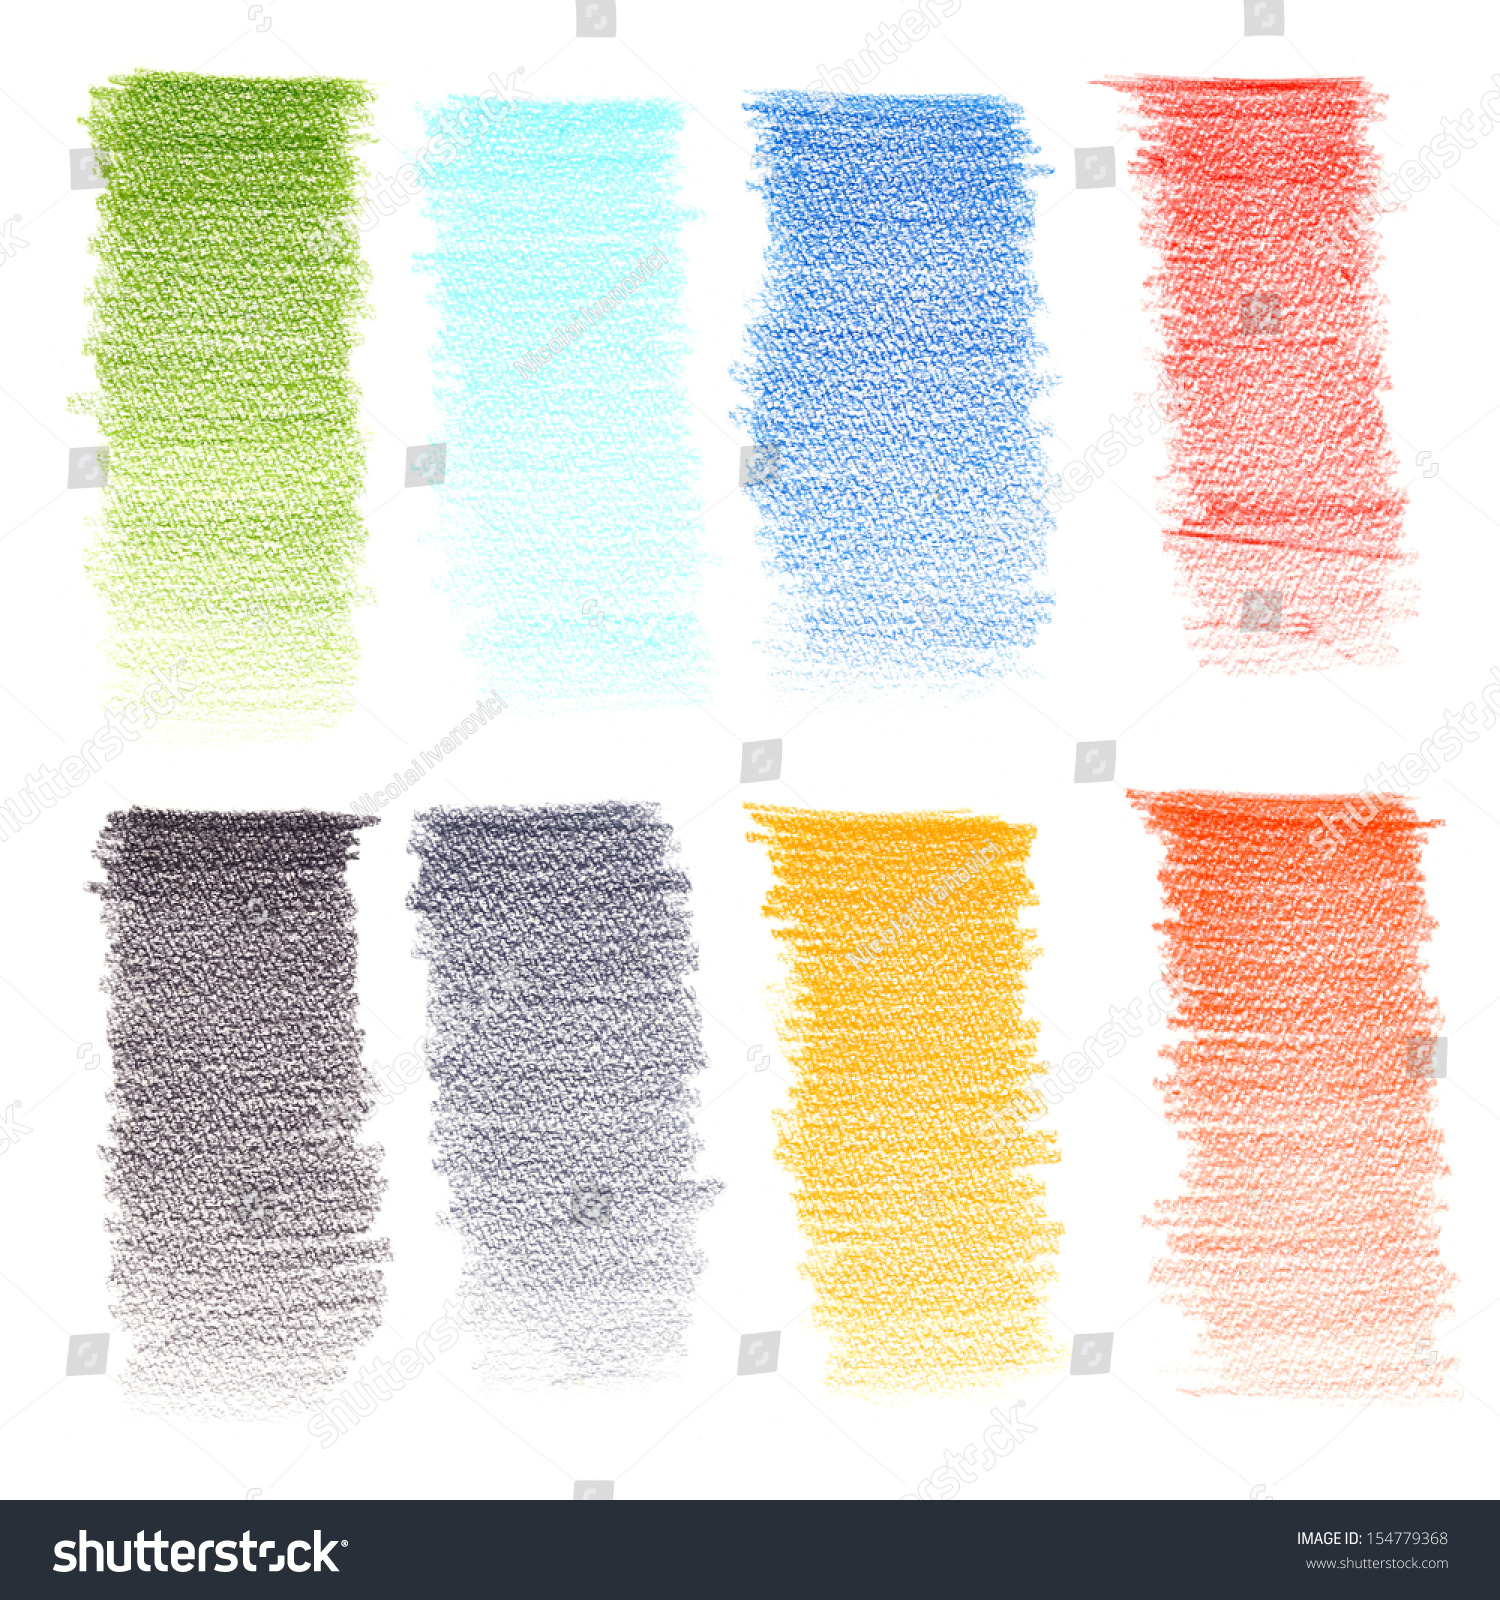 Color Pencil Texture Stock Photo 154779368 : Shutterstock